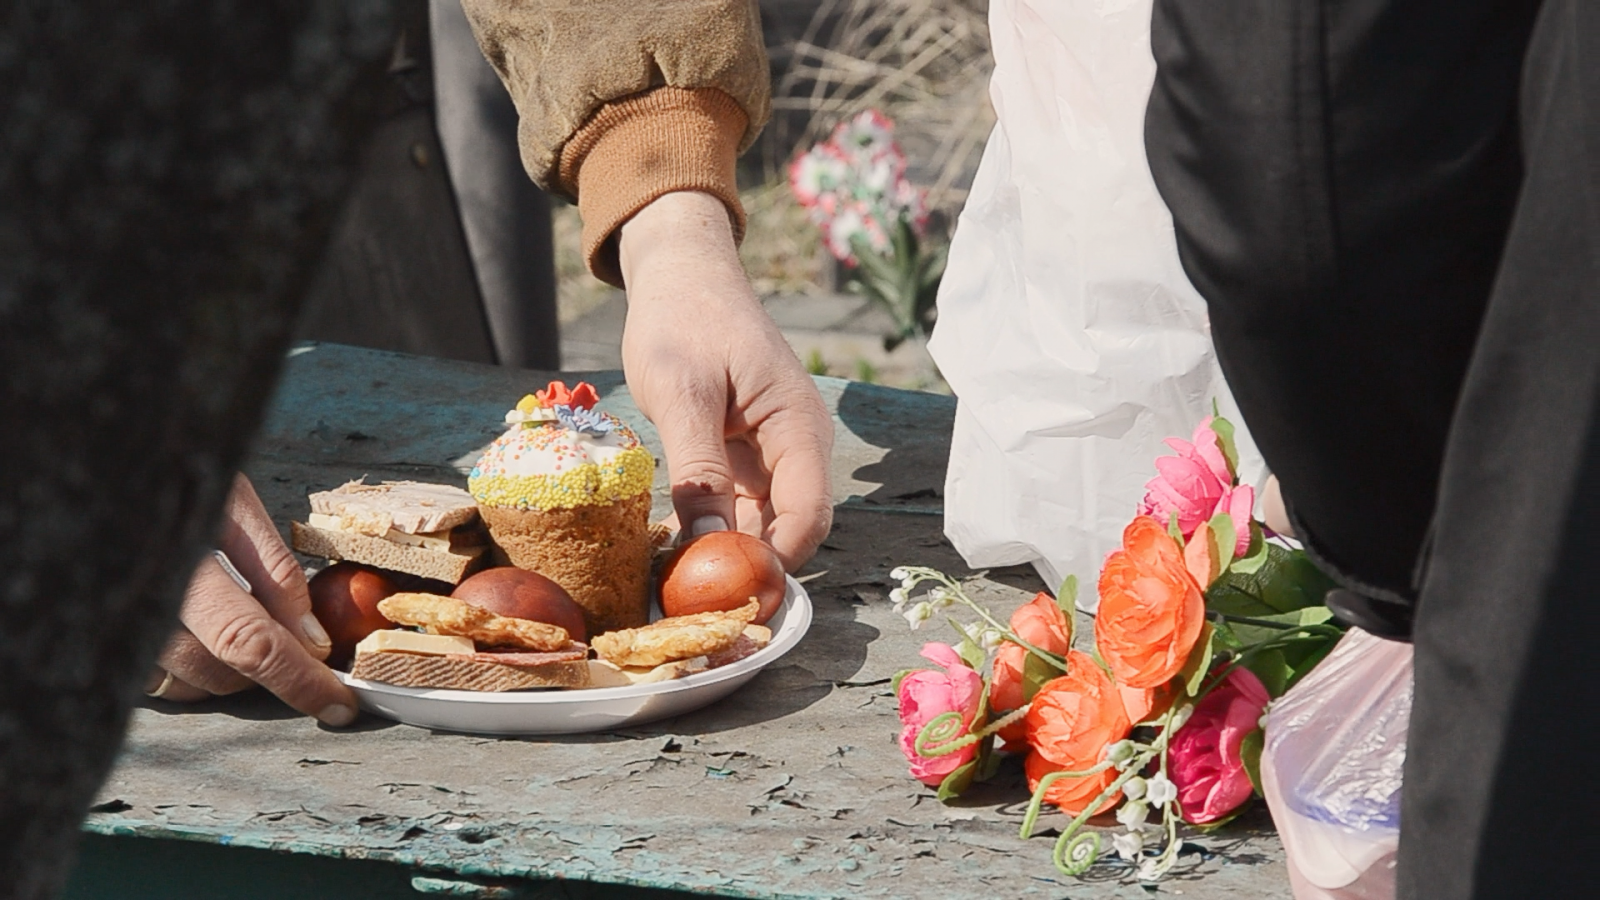 eng: Hands lower a plate with Easter cake, Easter eggs and cookies next to a bouquet of plastic flowers